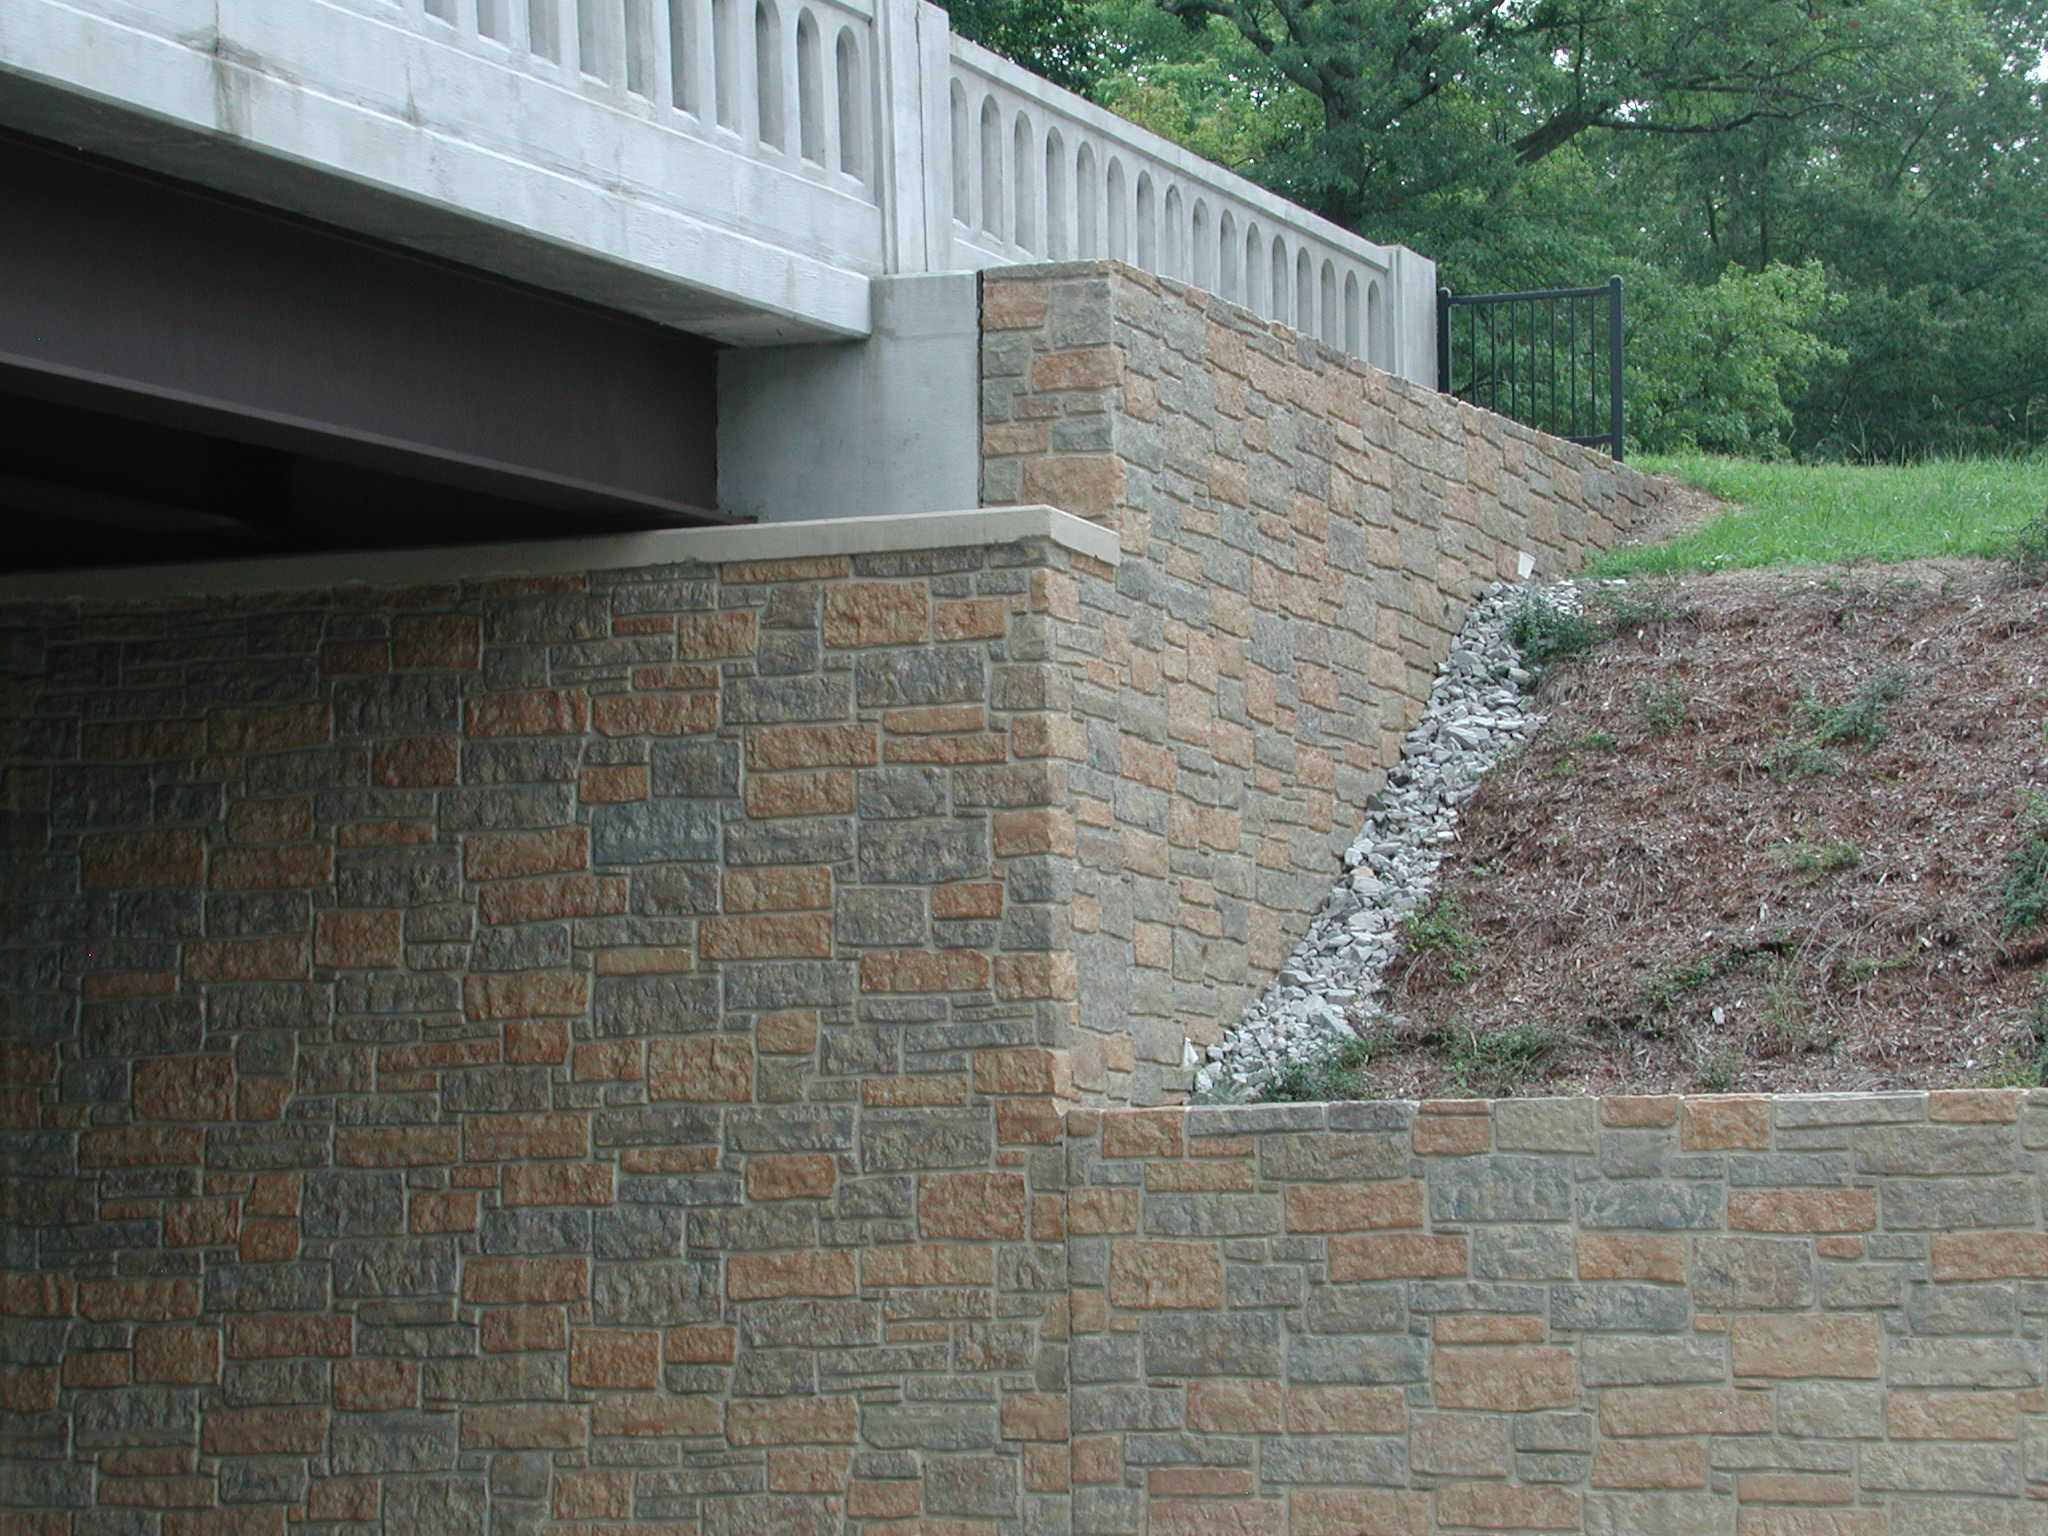 12005-bearpath-coursed-stone-formliner-hq-35